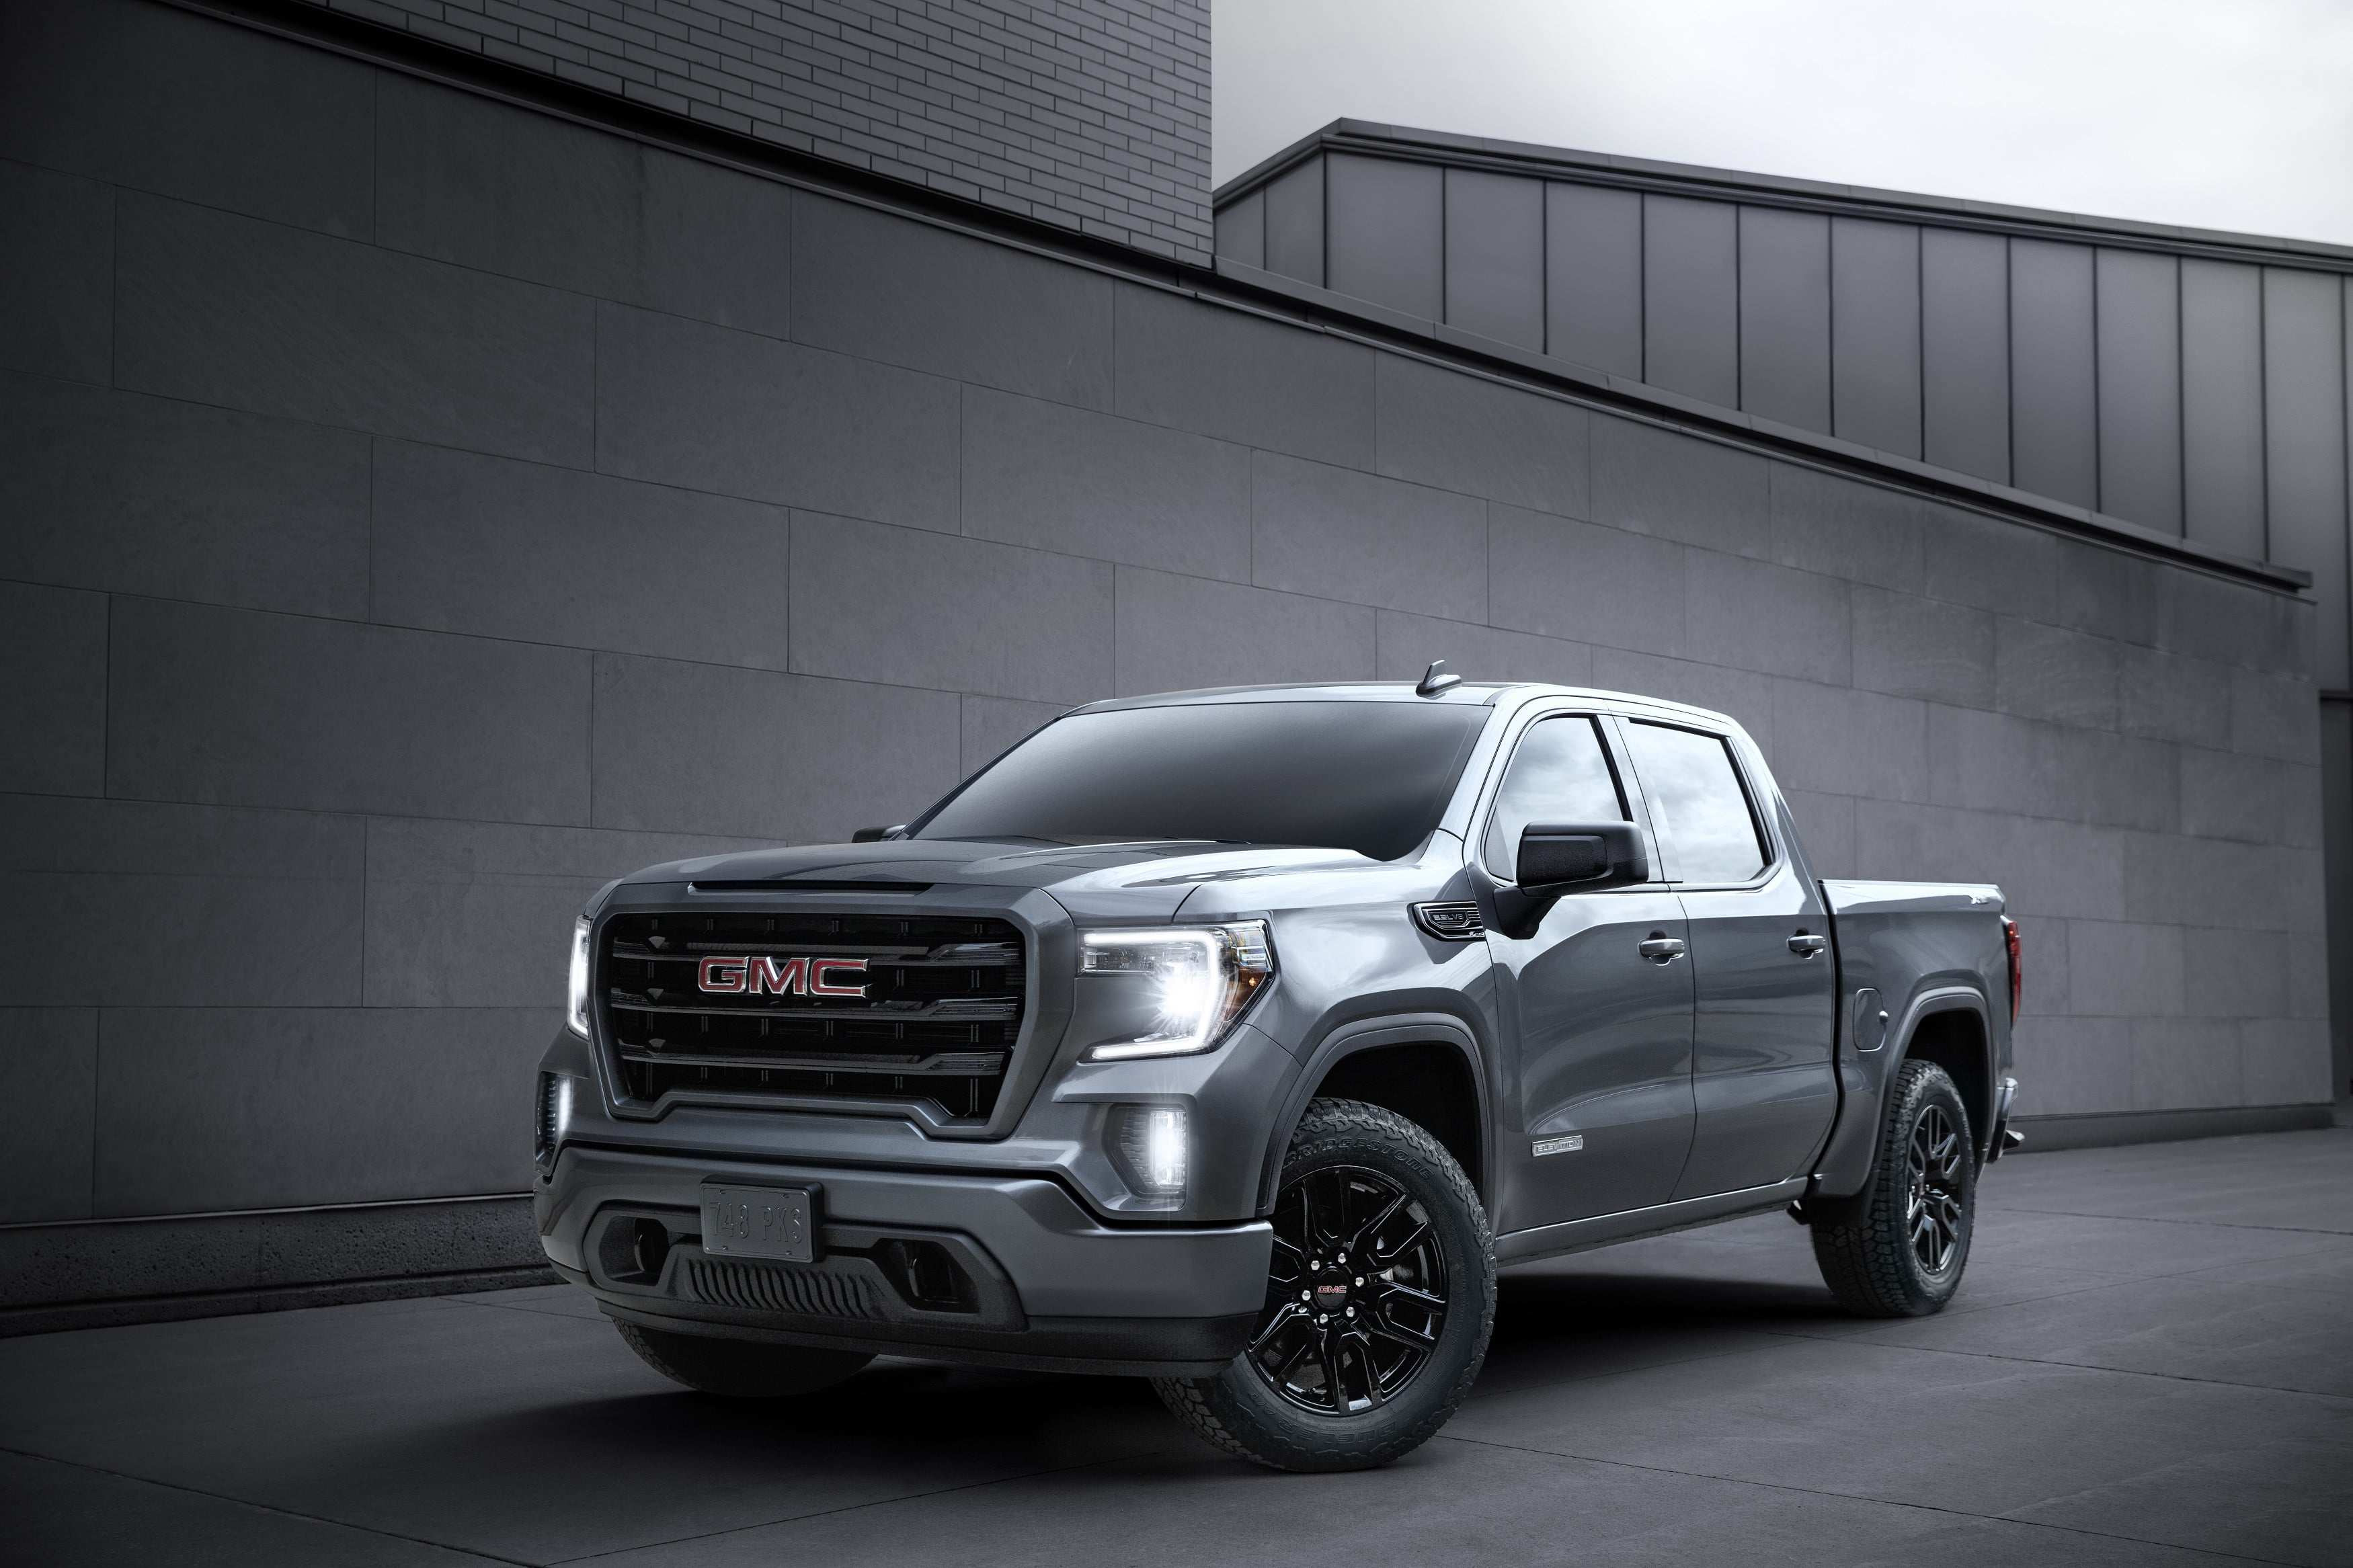 27 All New Gmc Pickup 2020 New Review with Gmc Pickup 2020